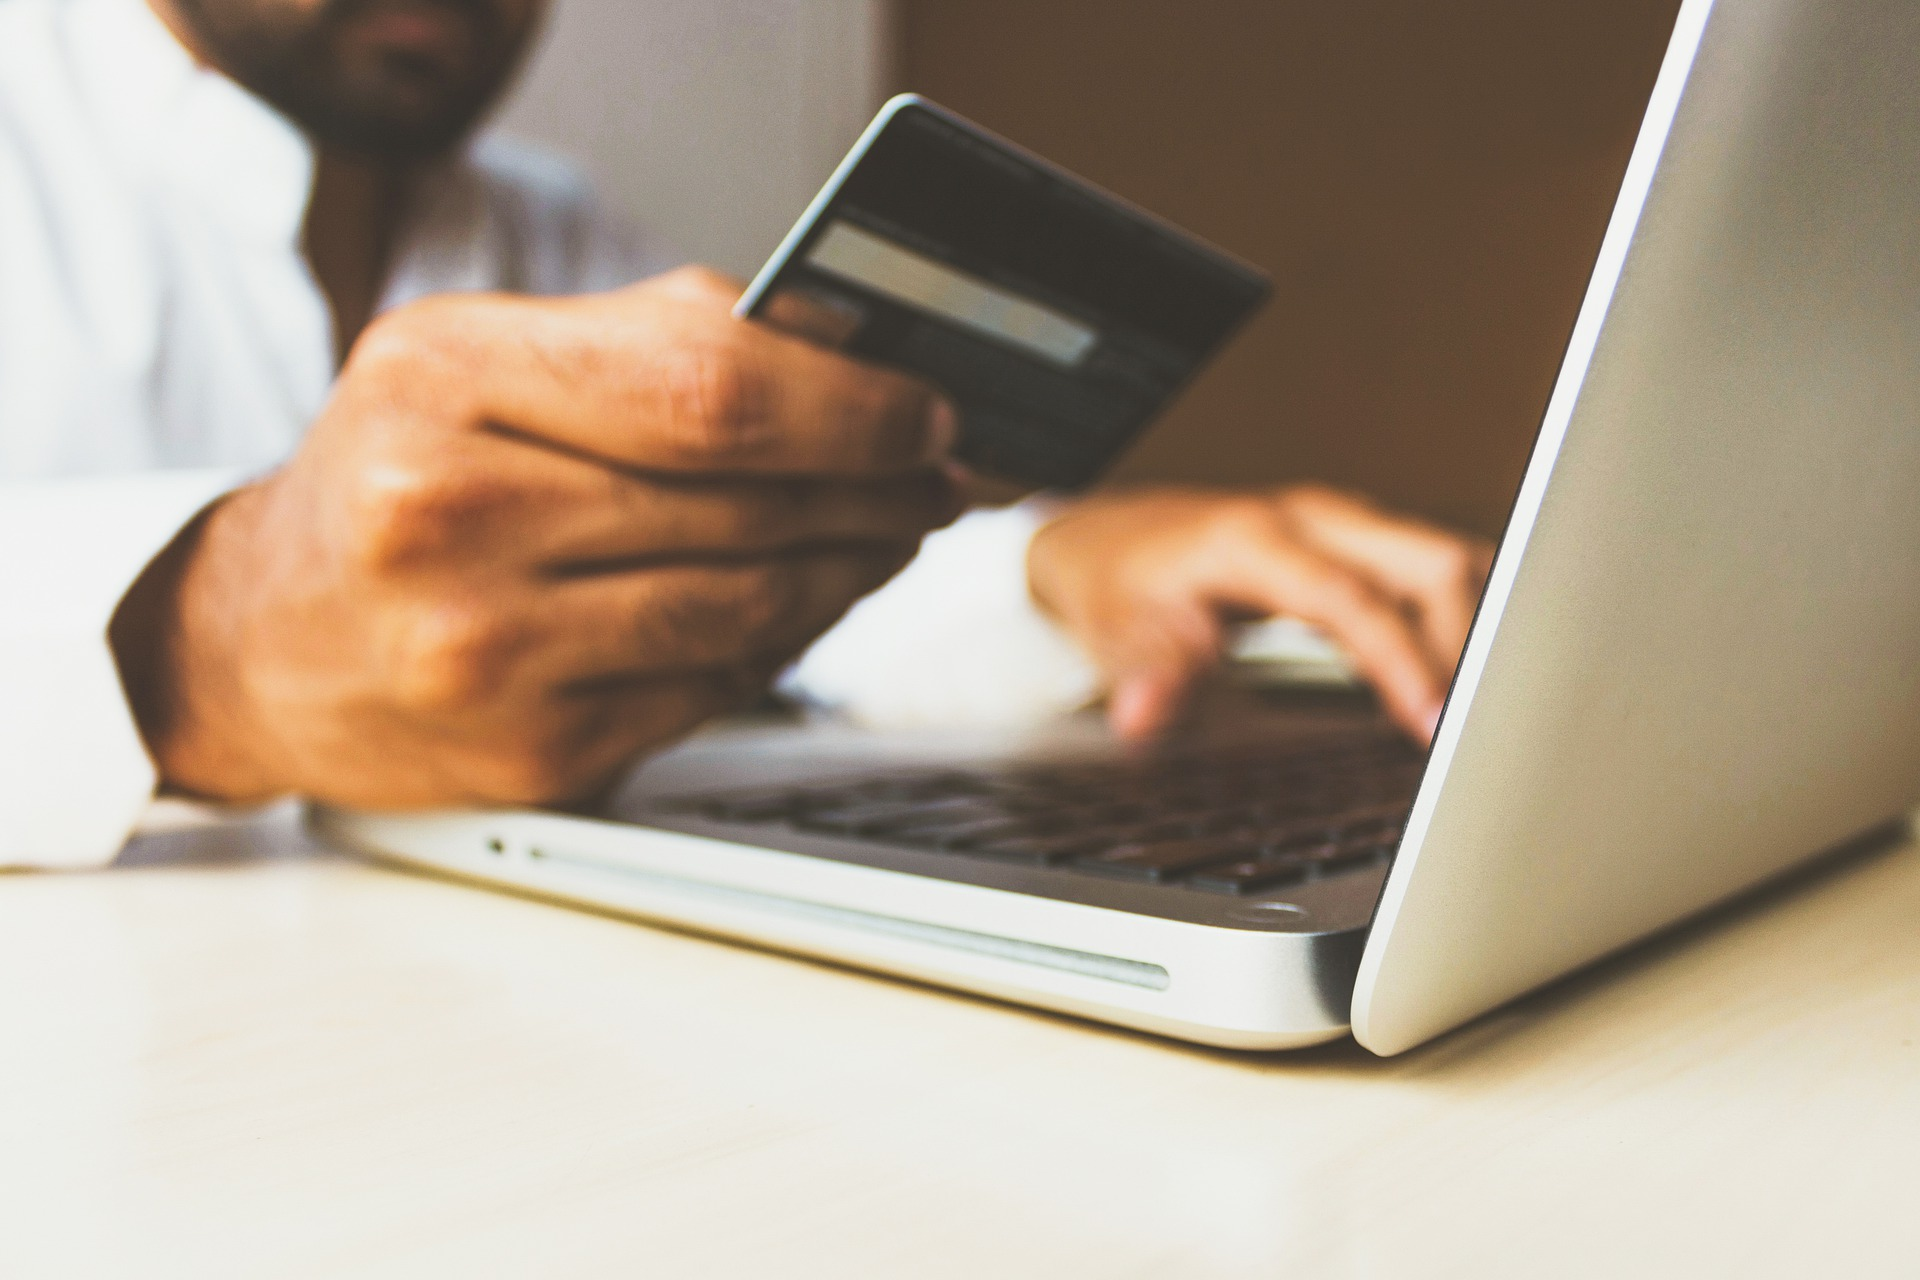 Instacart taps JPMorgan Chase to issue credit cards